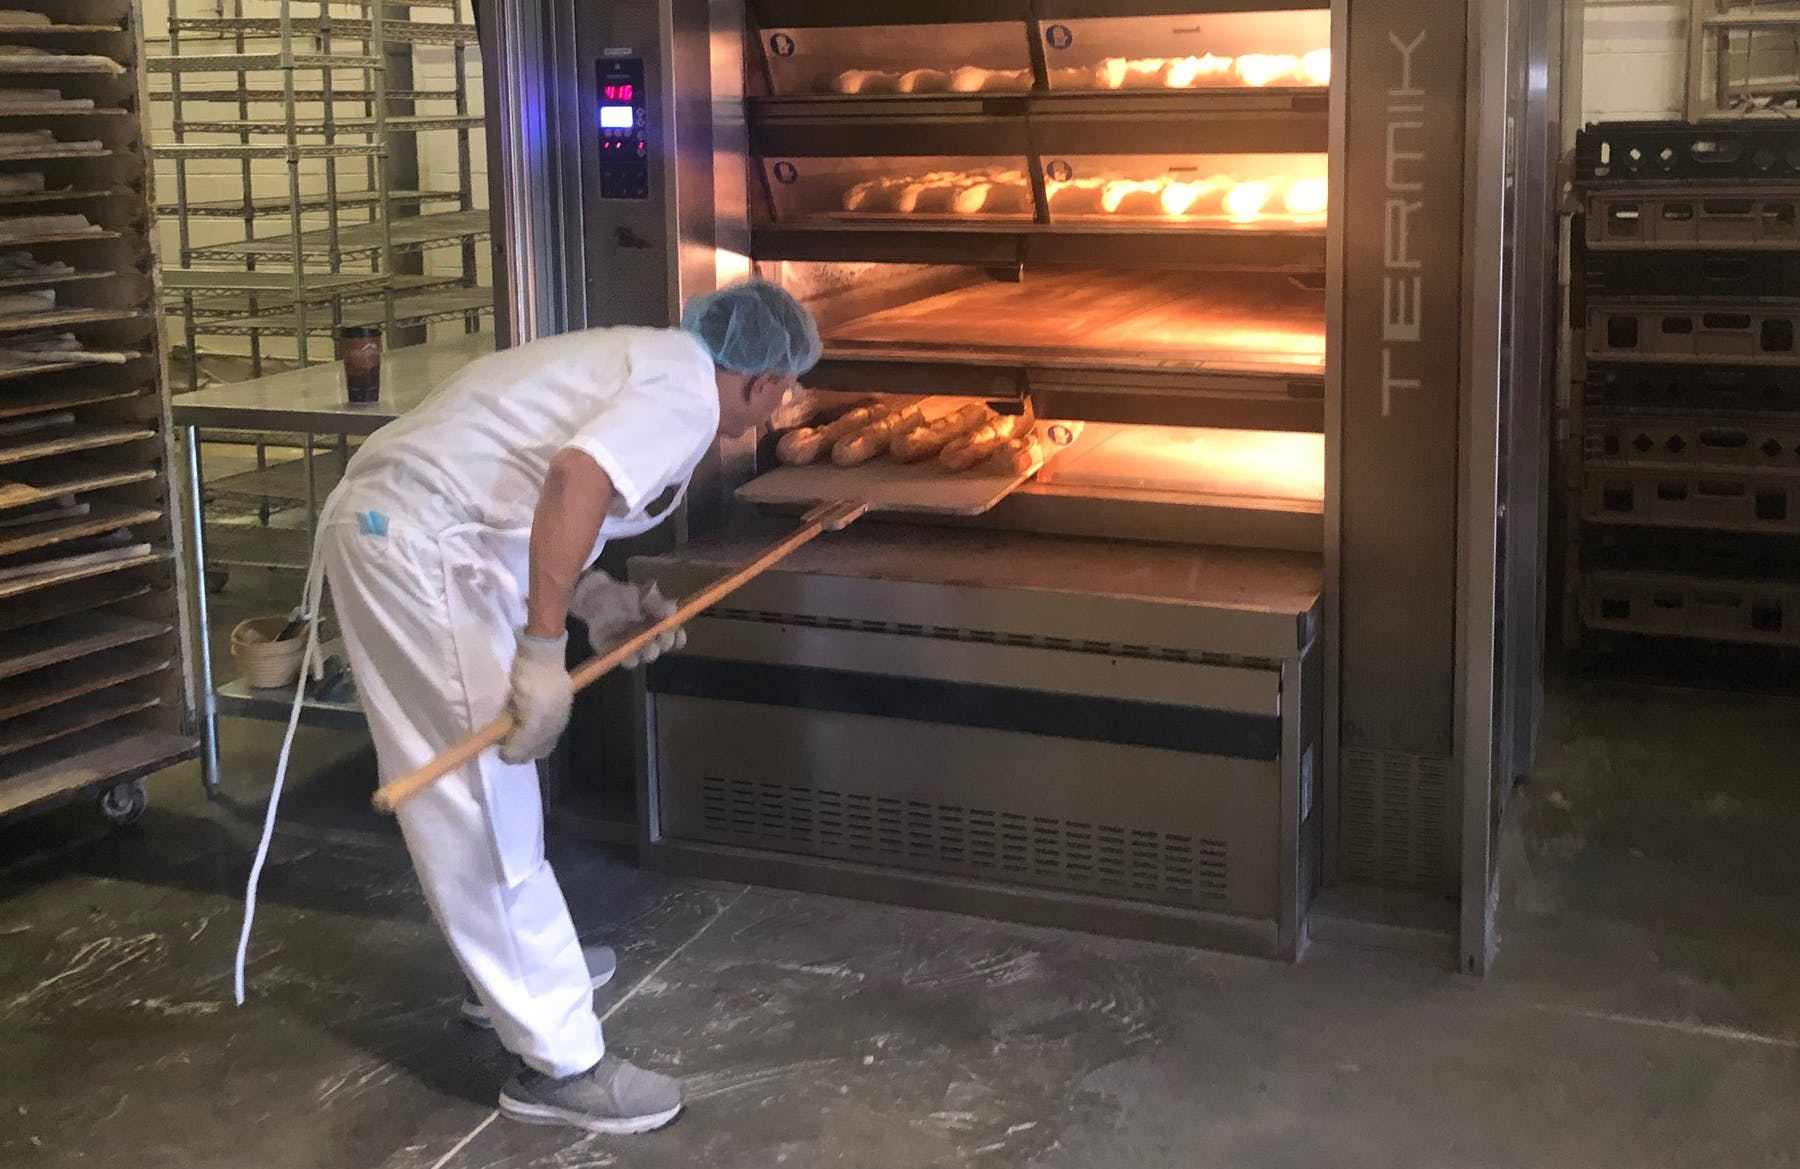 a man putting bread in an oven